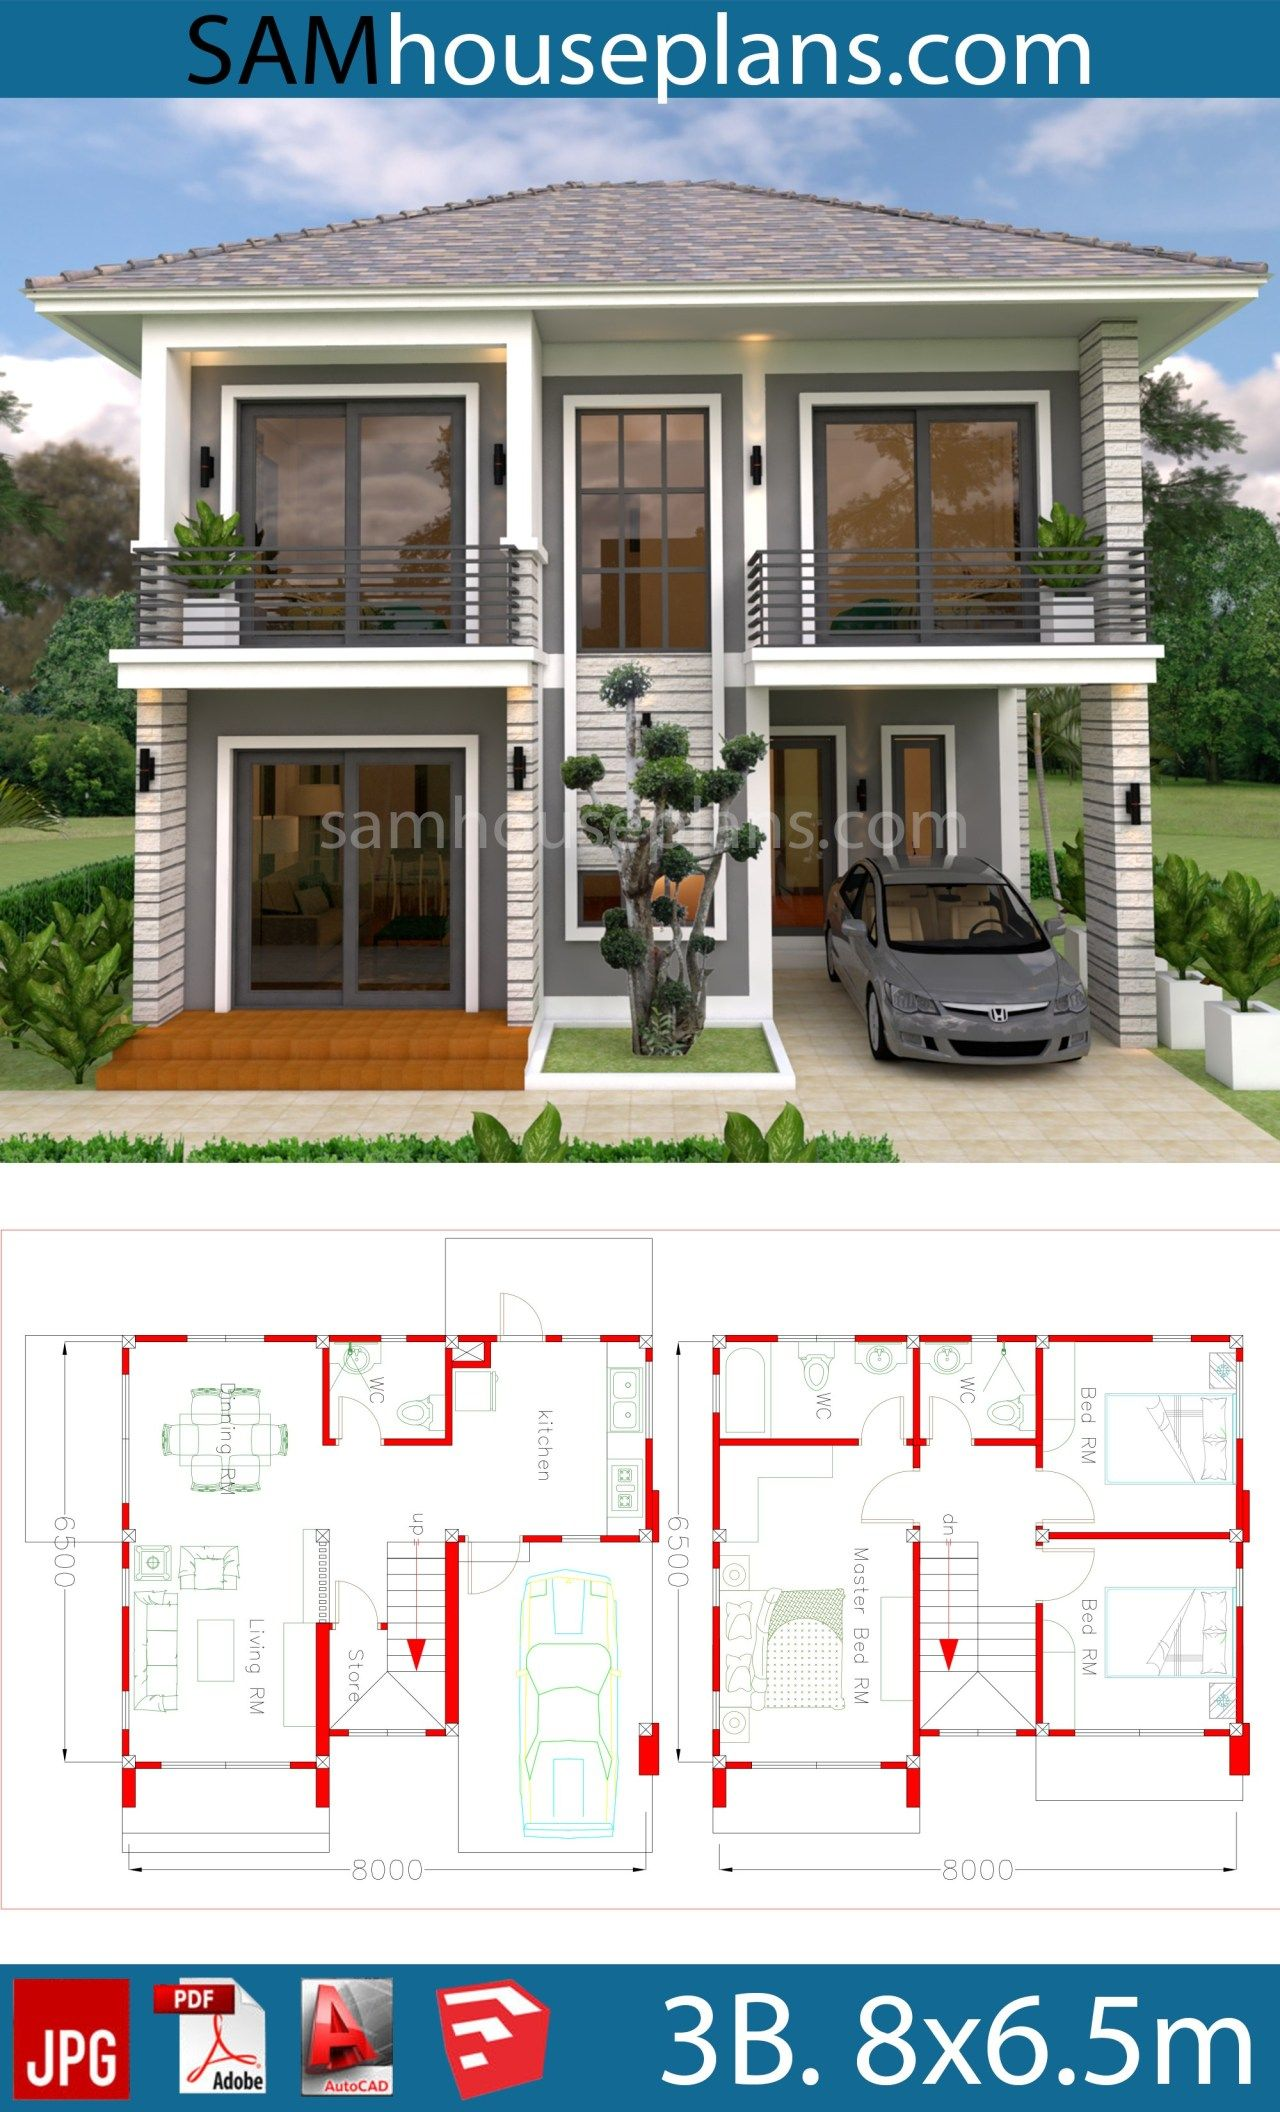 House Plans 8x6.5m With 3 Bedrooms en 2020 | Plan maison ...